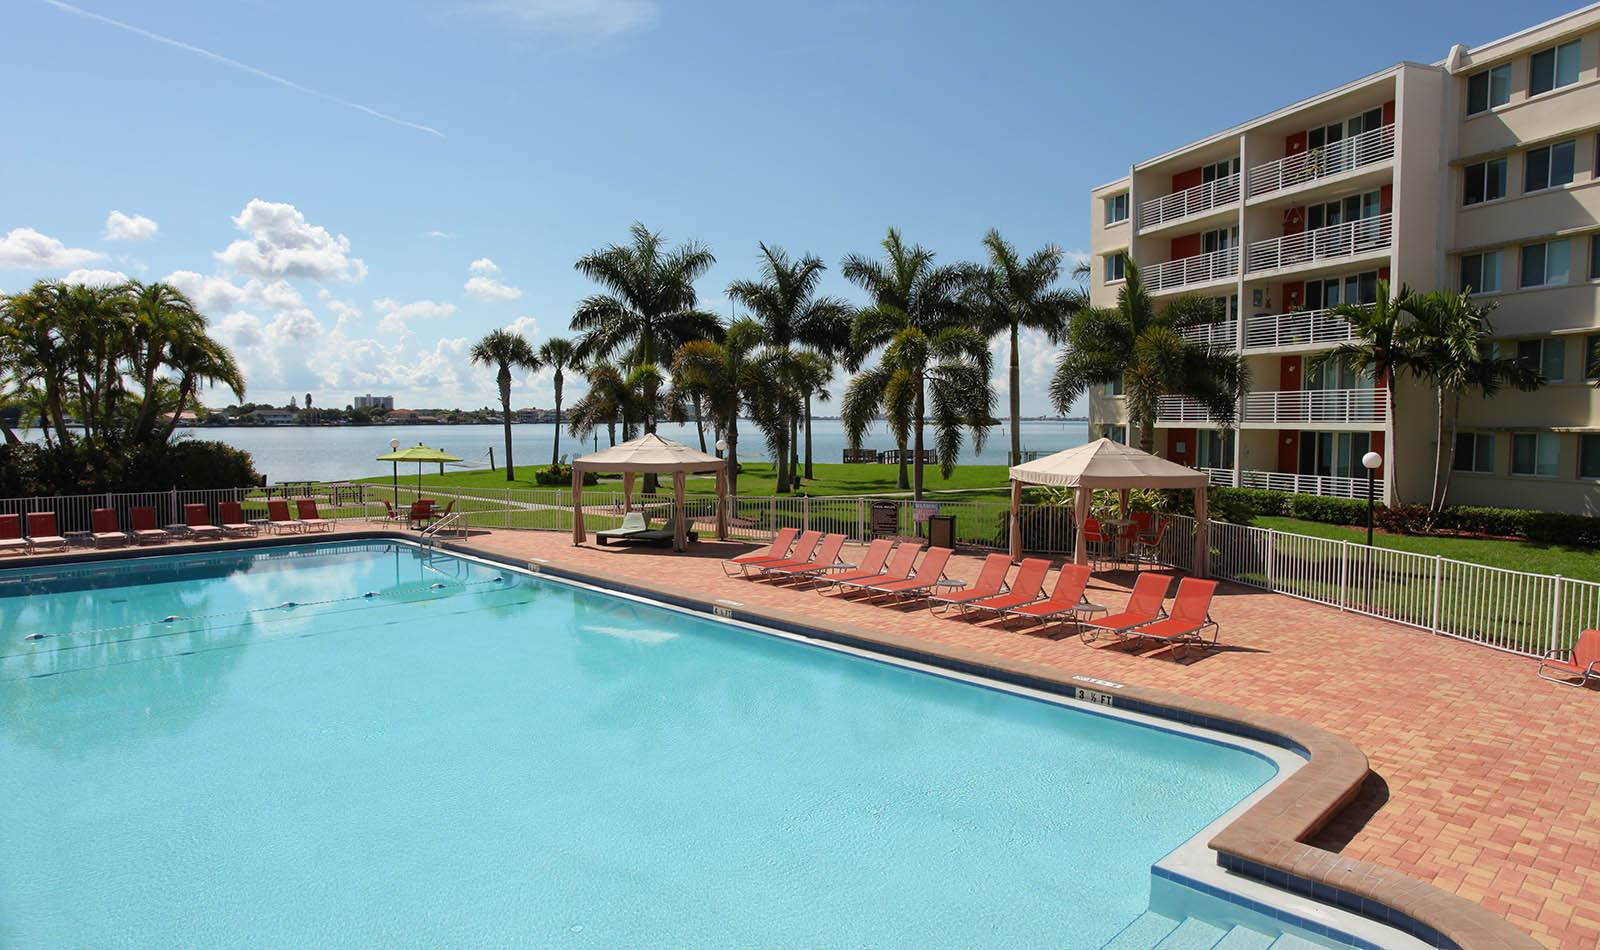 Outdoor pool at Waters Pointe Apartments in South Pasadena, FL